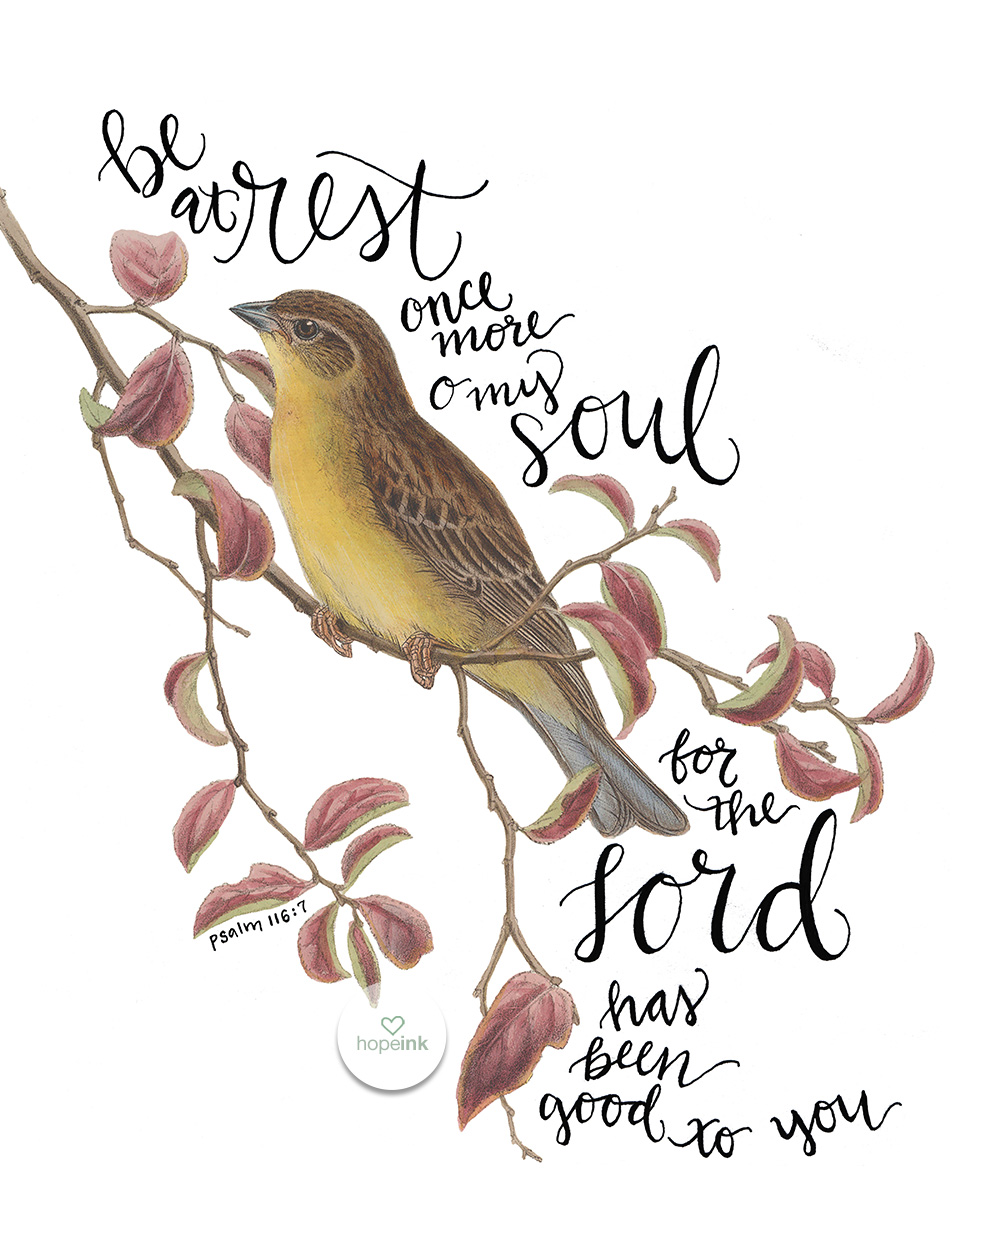 Hand Lettered Scripture Art | Vintage Bird | Hope Ink.jpg